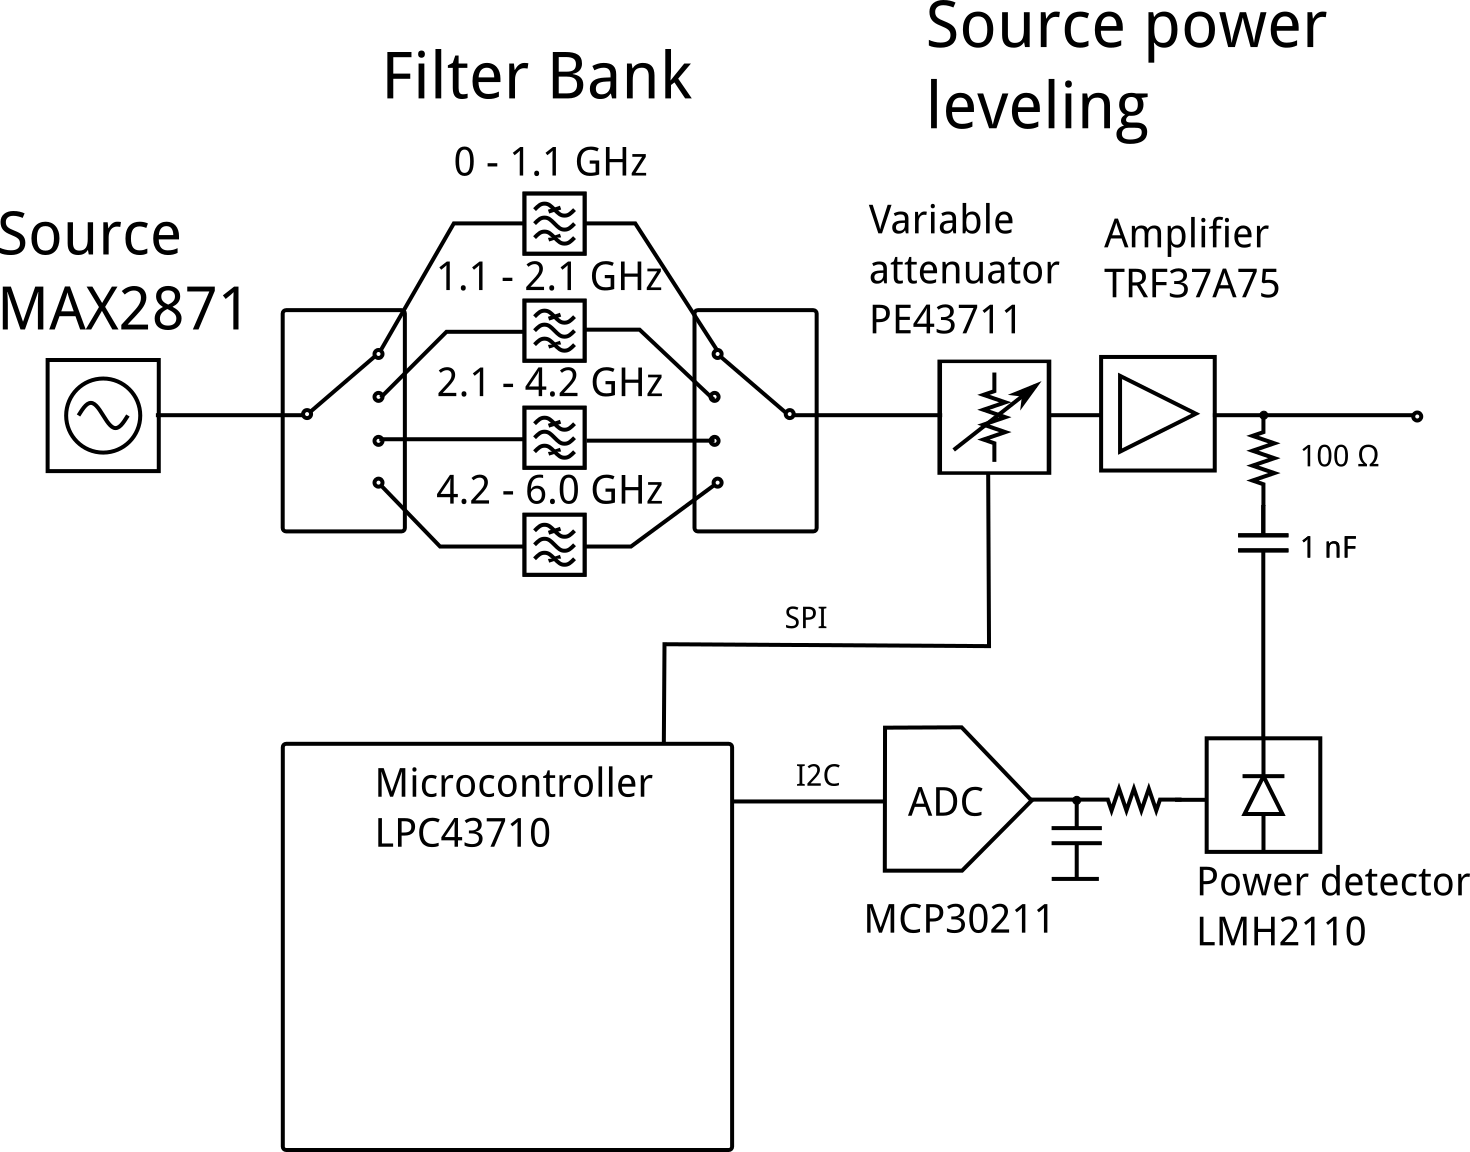 more detailed block diagram of the source